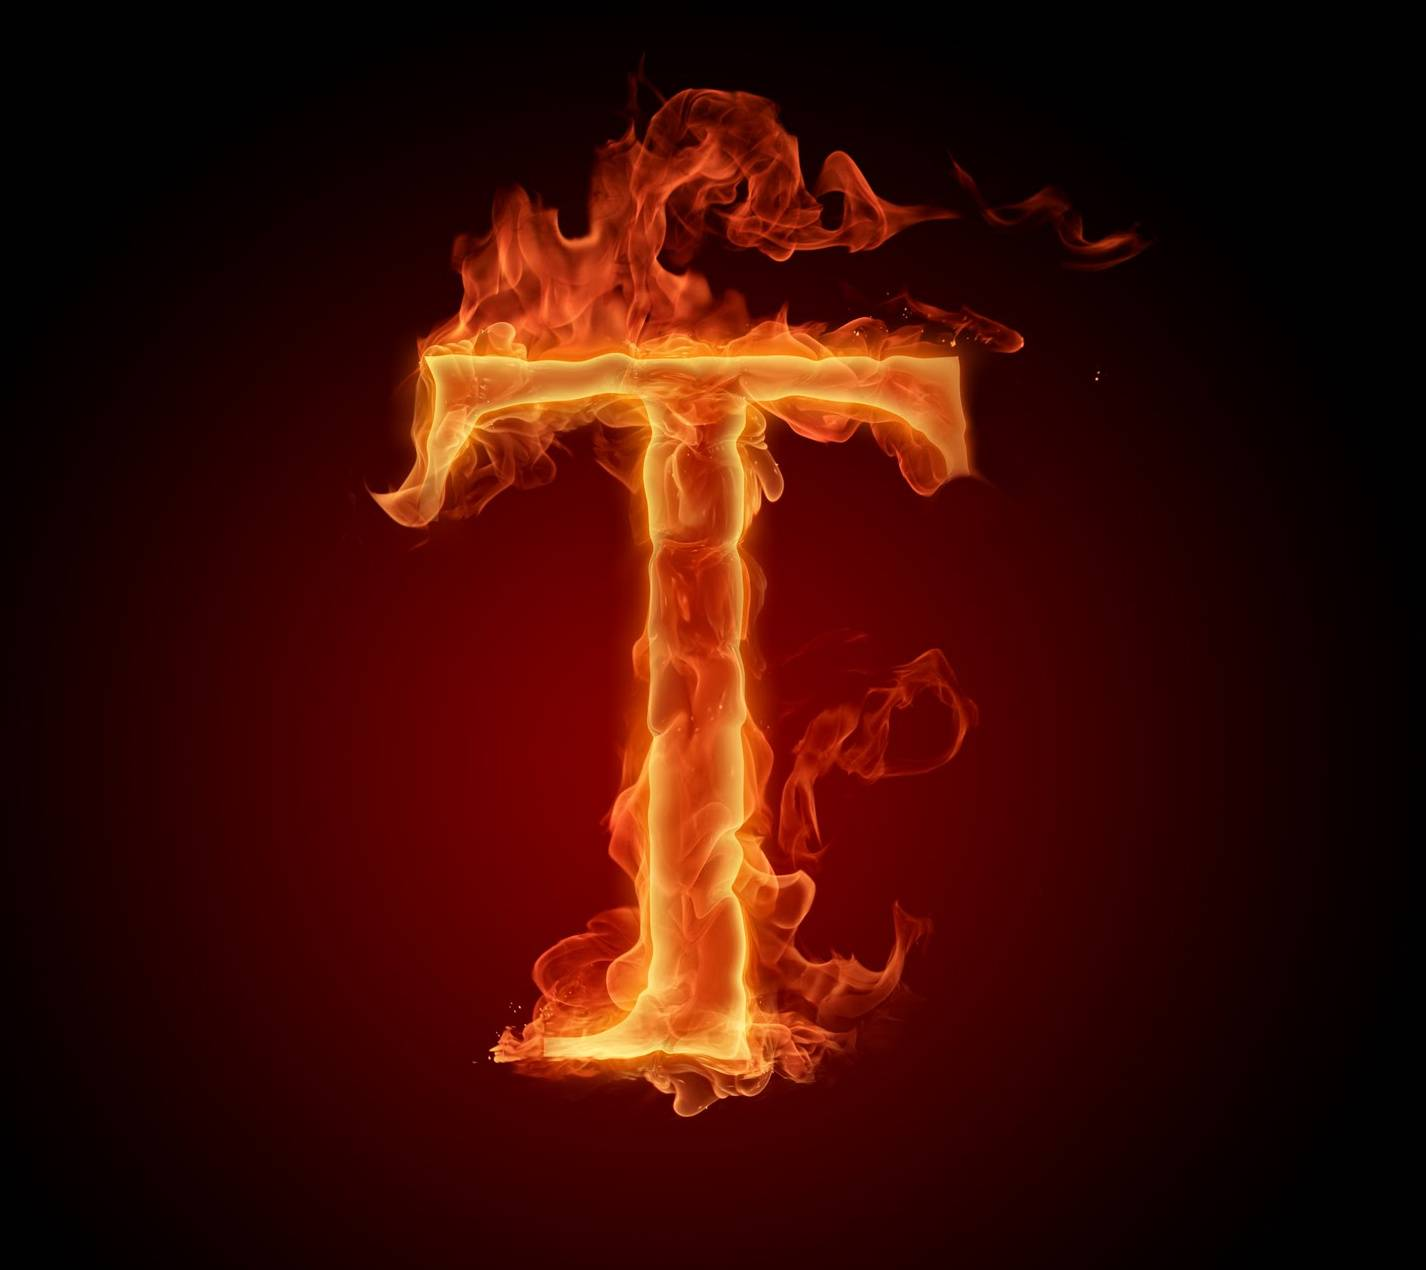 Letter t in fire hd wallpaper by mrlazy a1 free on zedge letter t in fire hd altavistaventures Gallery